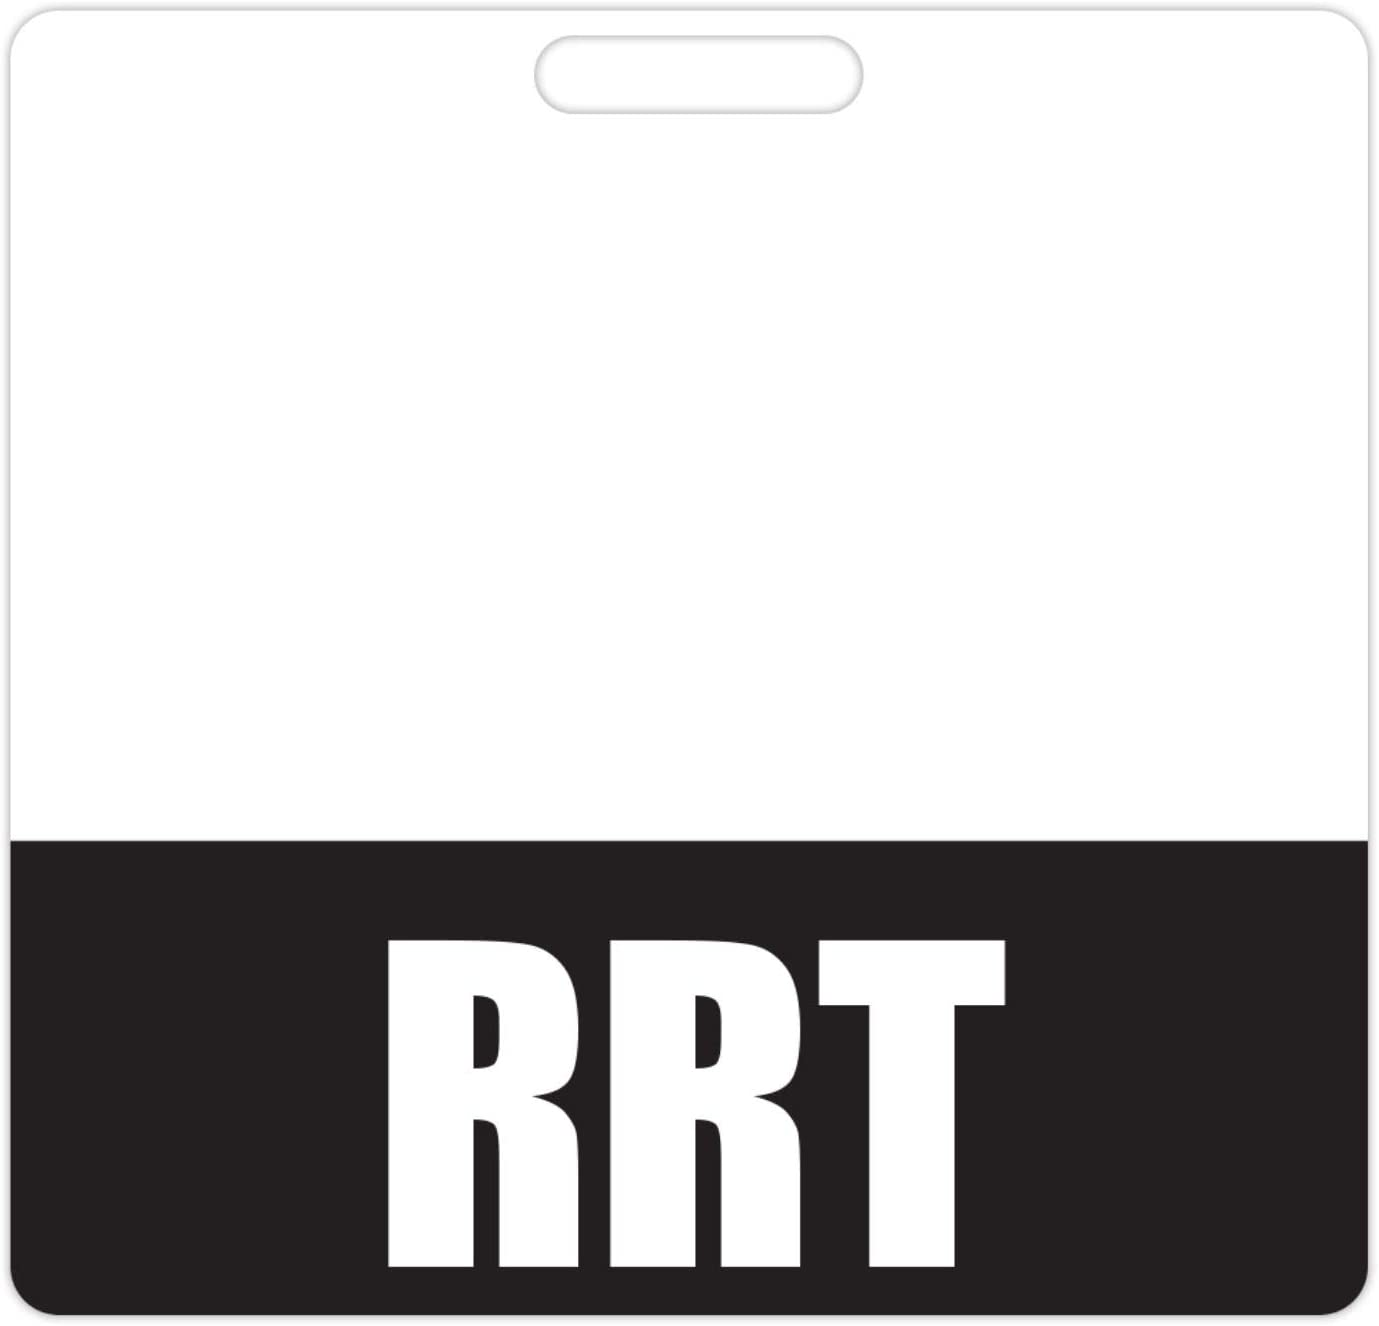 RRT Badge Buddy (Black) - Horizontal Heavy Duty Badge Tags for Registered Respiratory Therapists - Double Sided Badge Identification Card